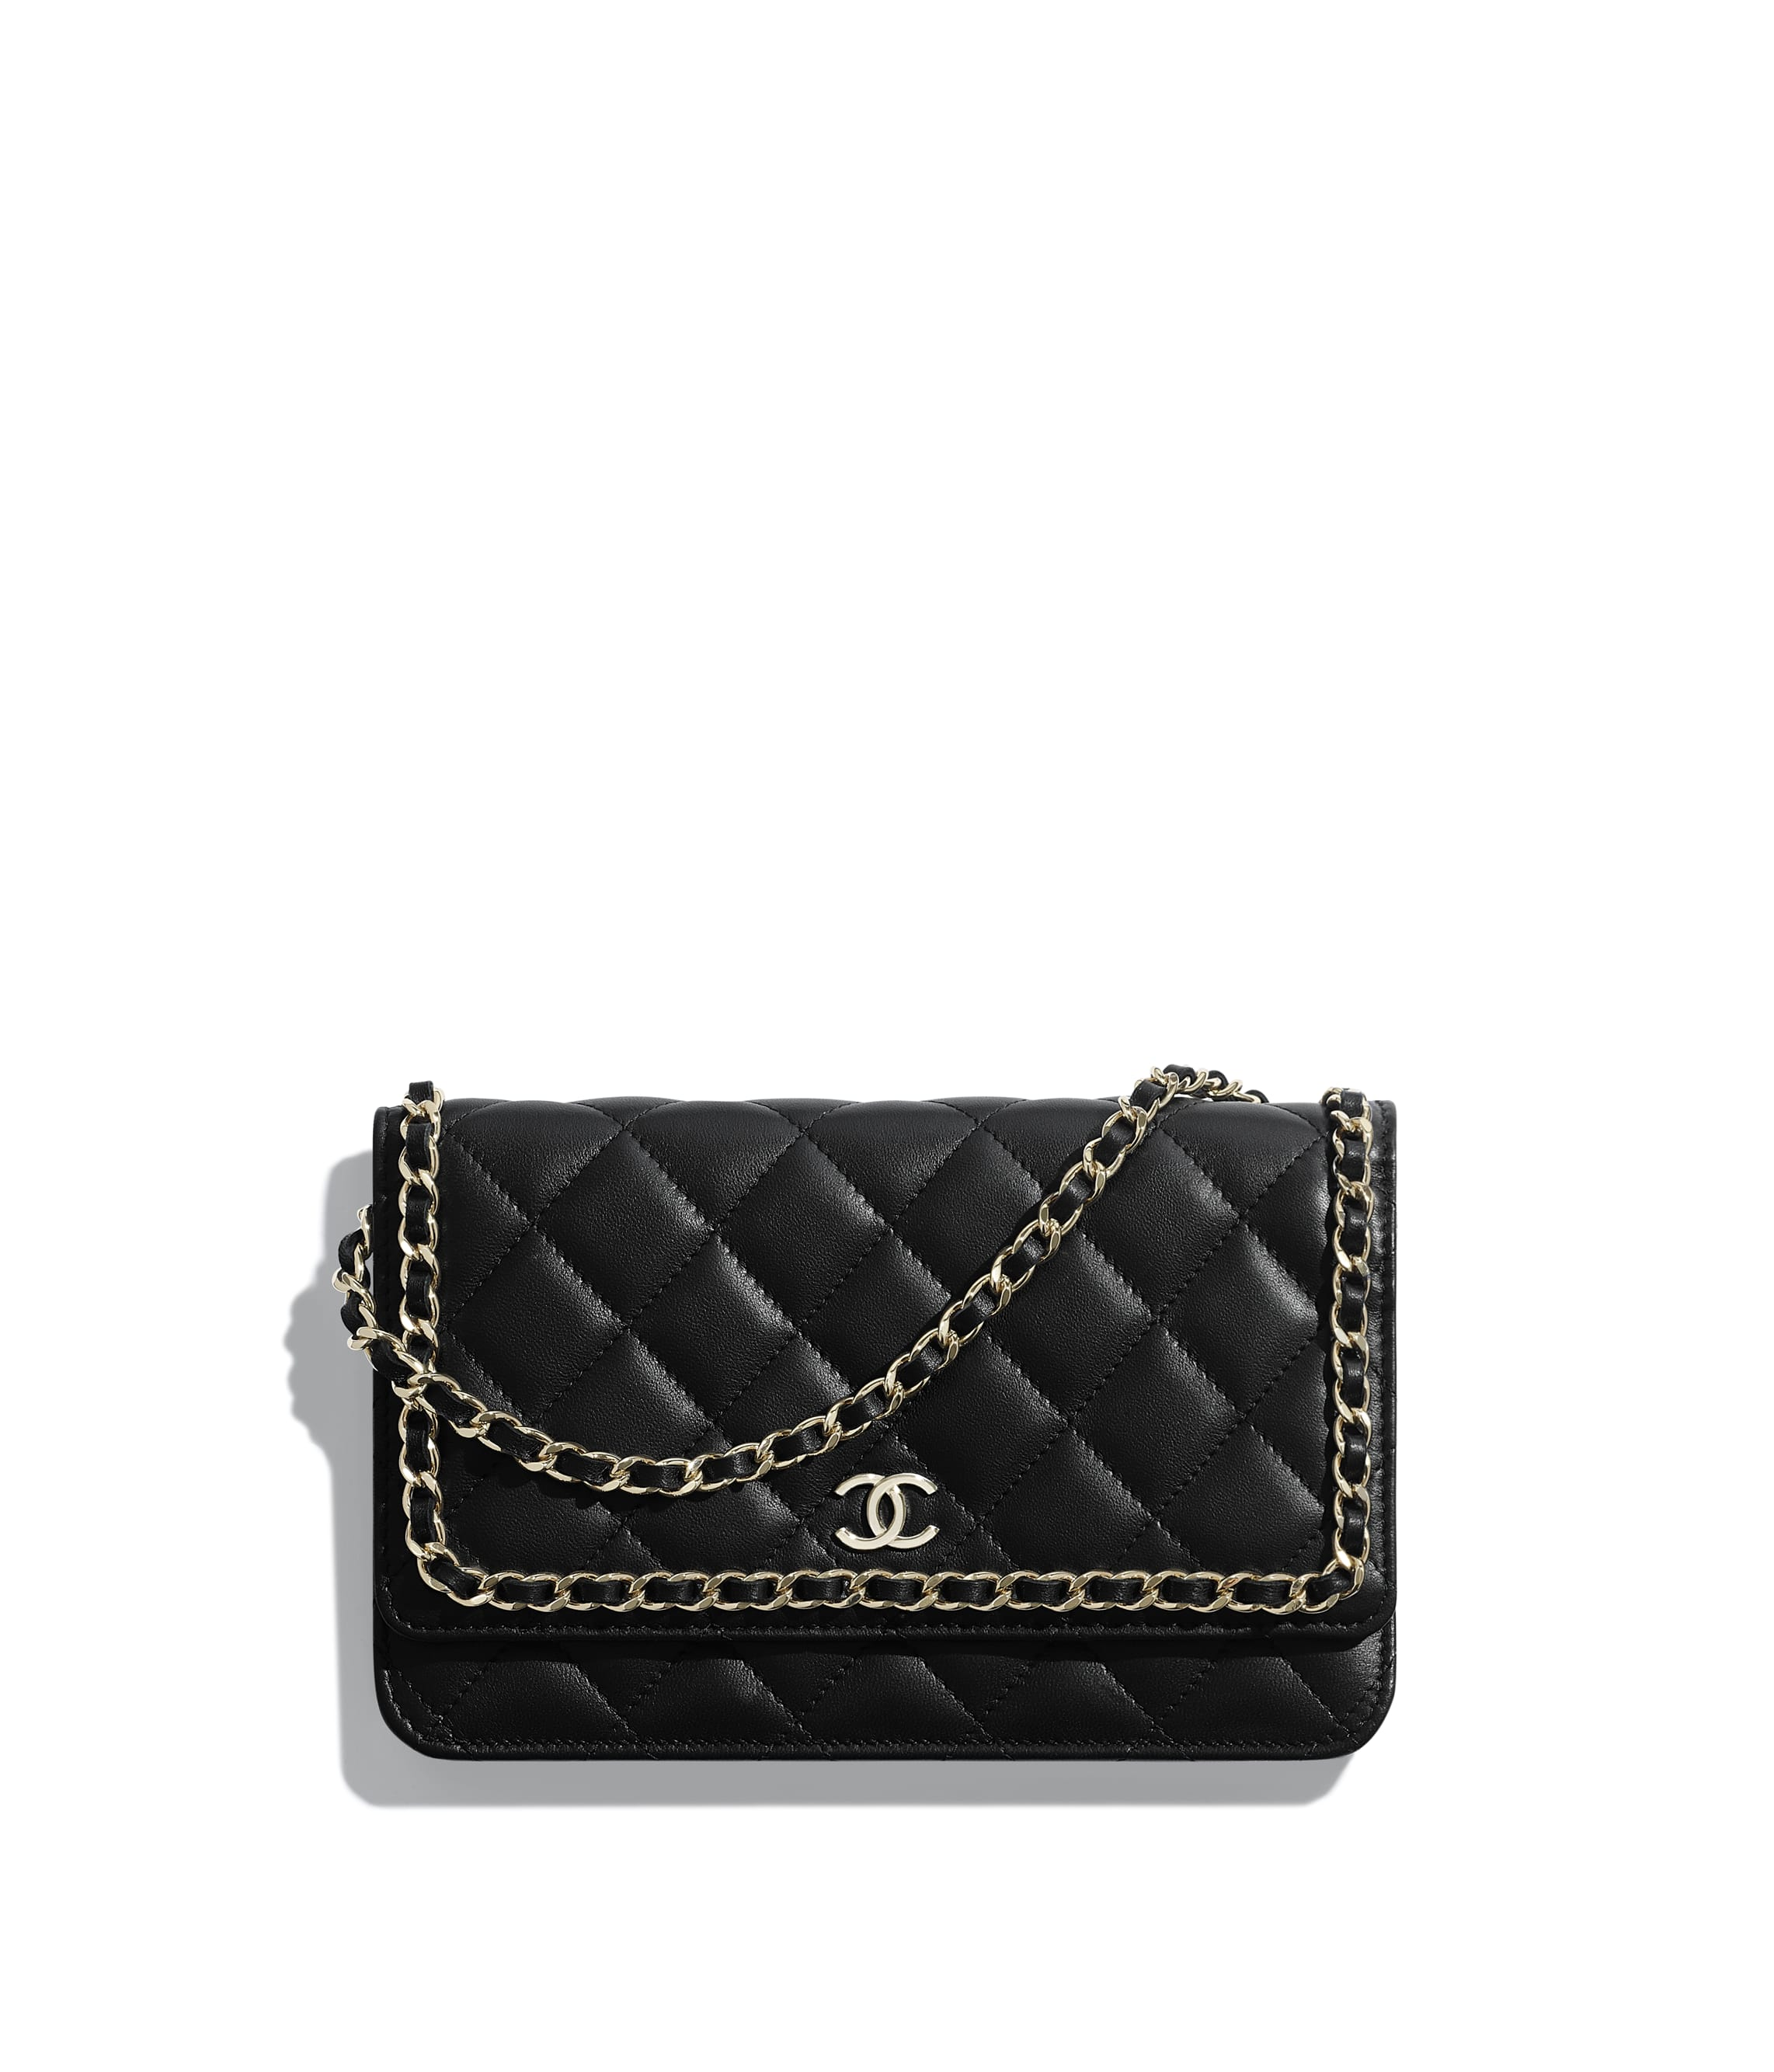 bc9d8ad2f65a8 Small leather goods - CHANEL